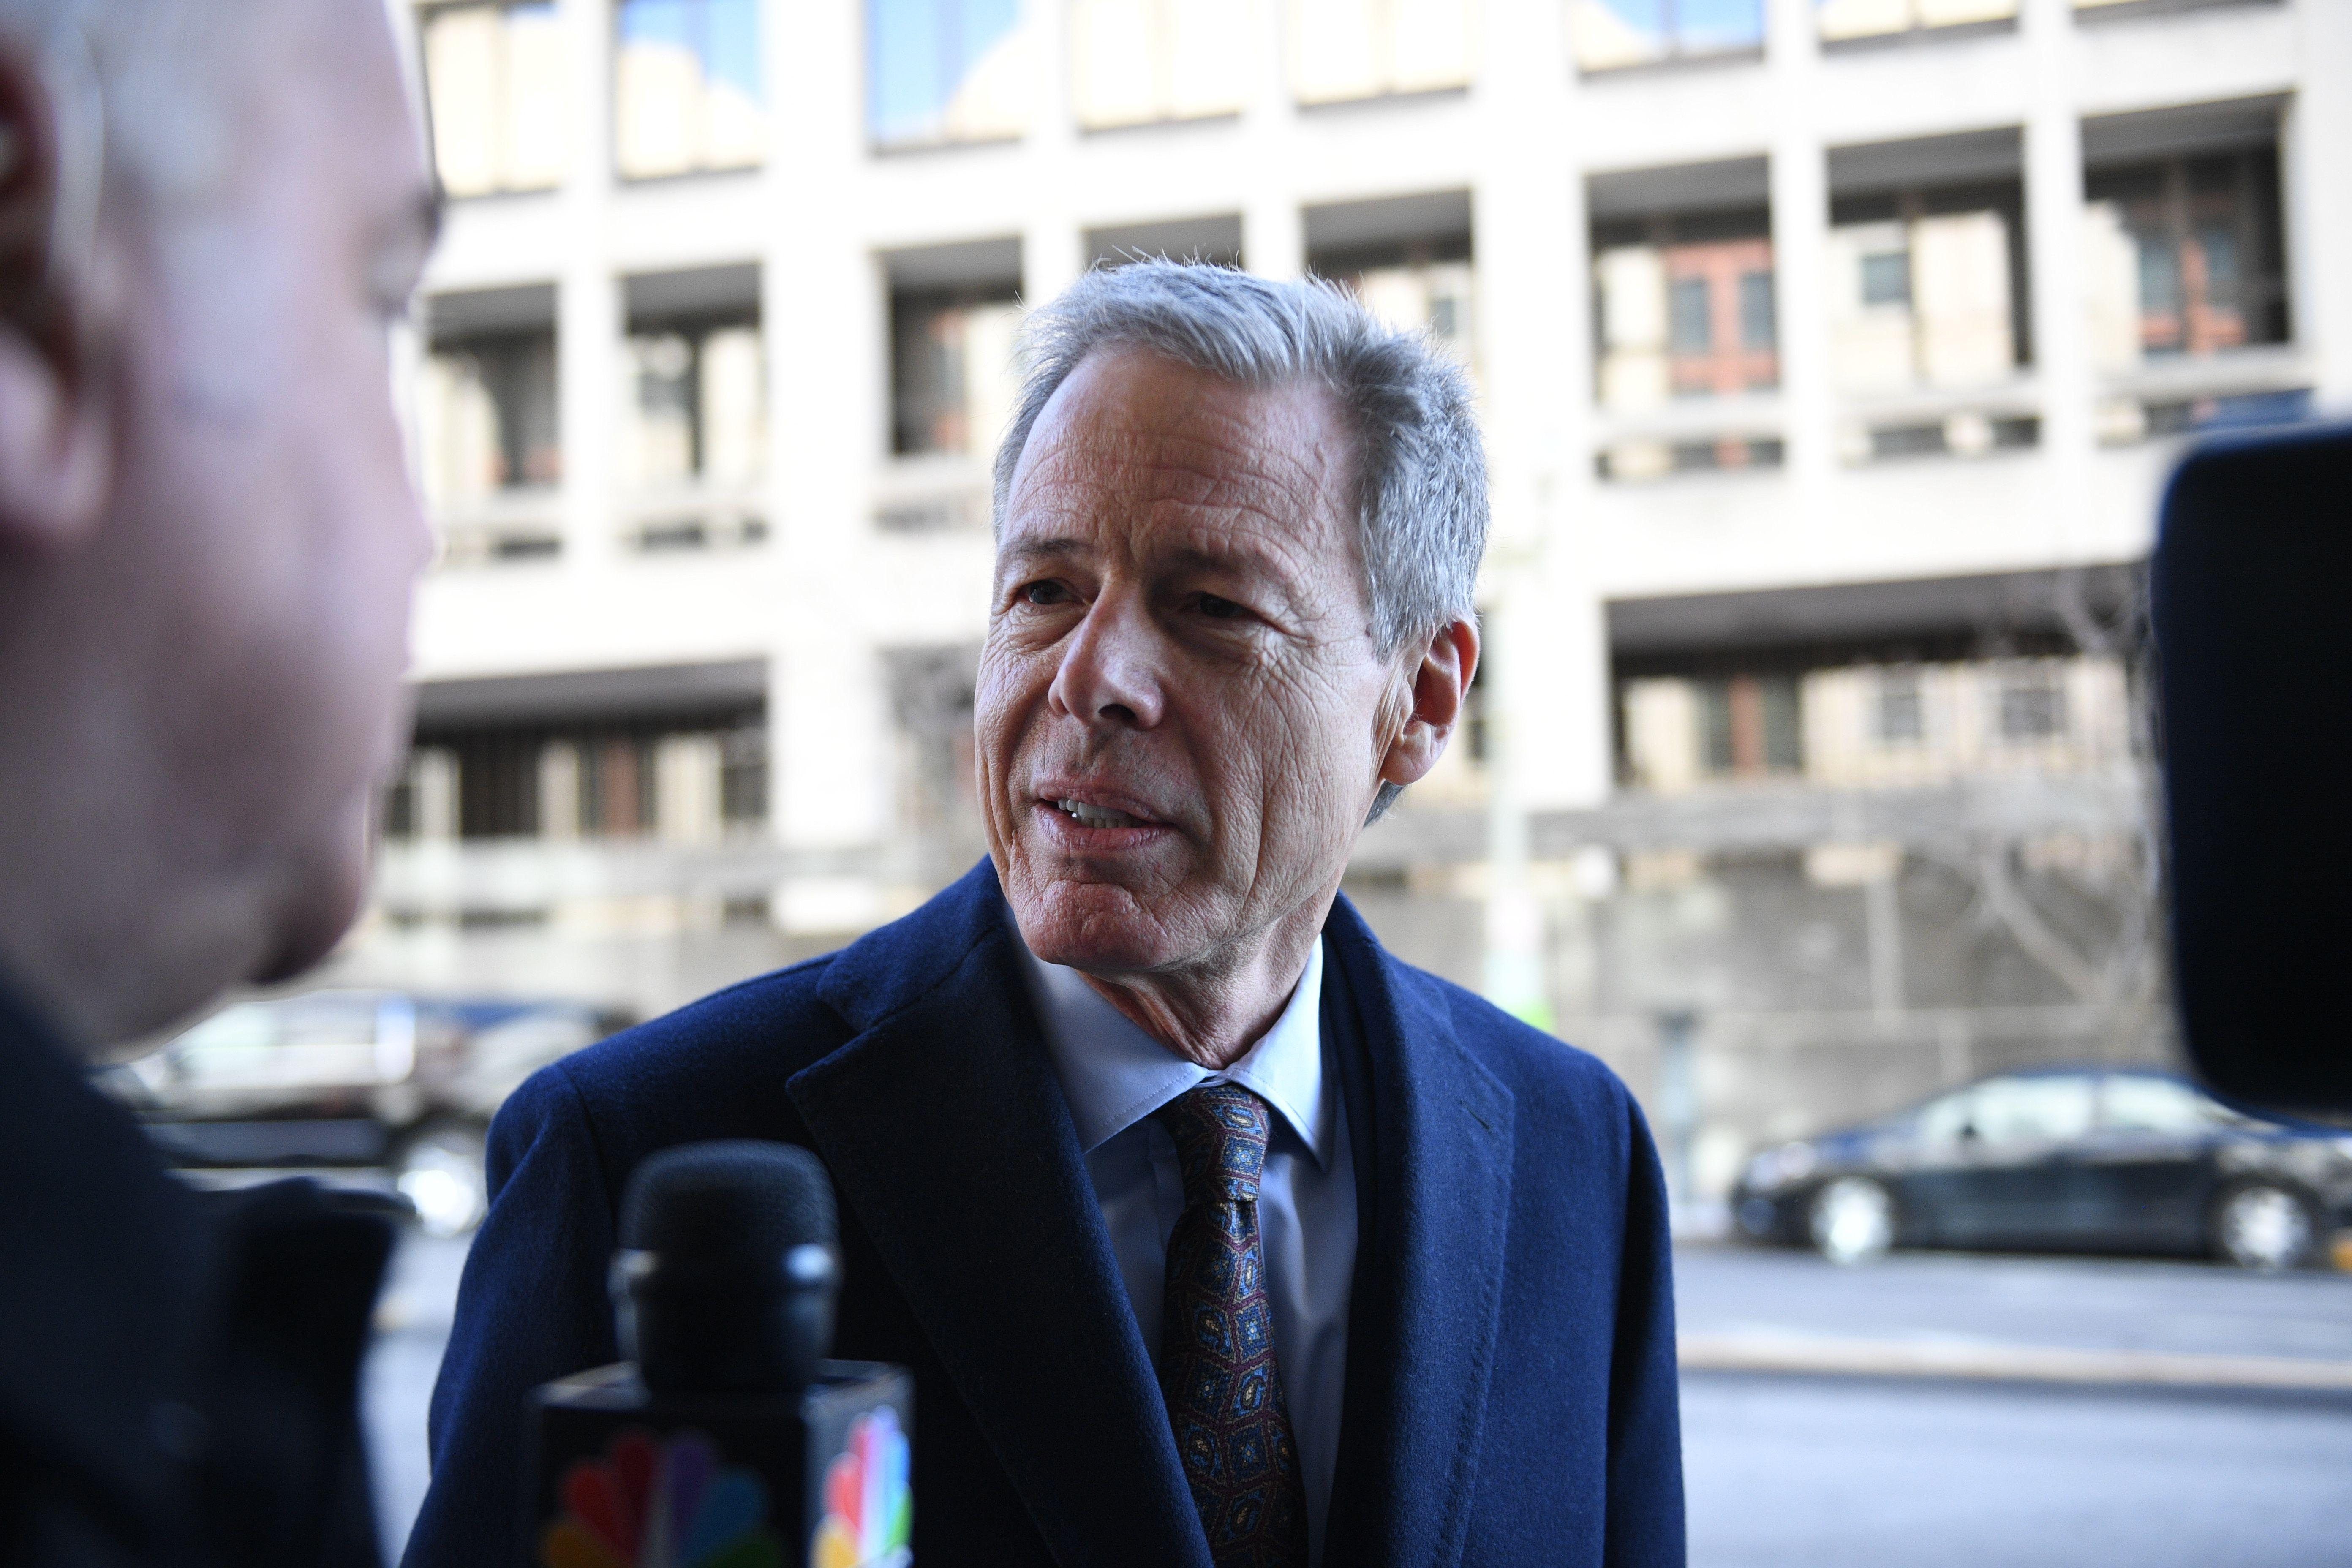 Time Warner CEO Jeff Bewkes arrives for opening statements back on March 22.